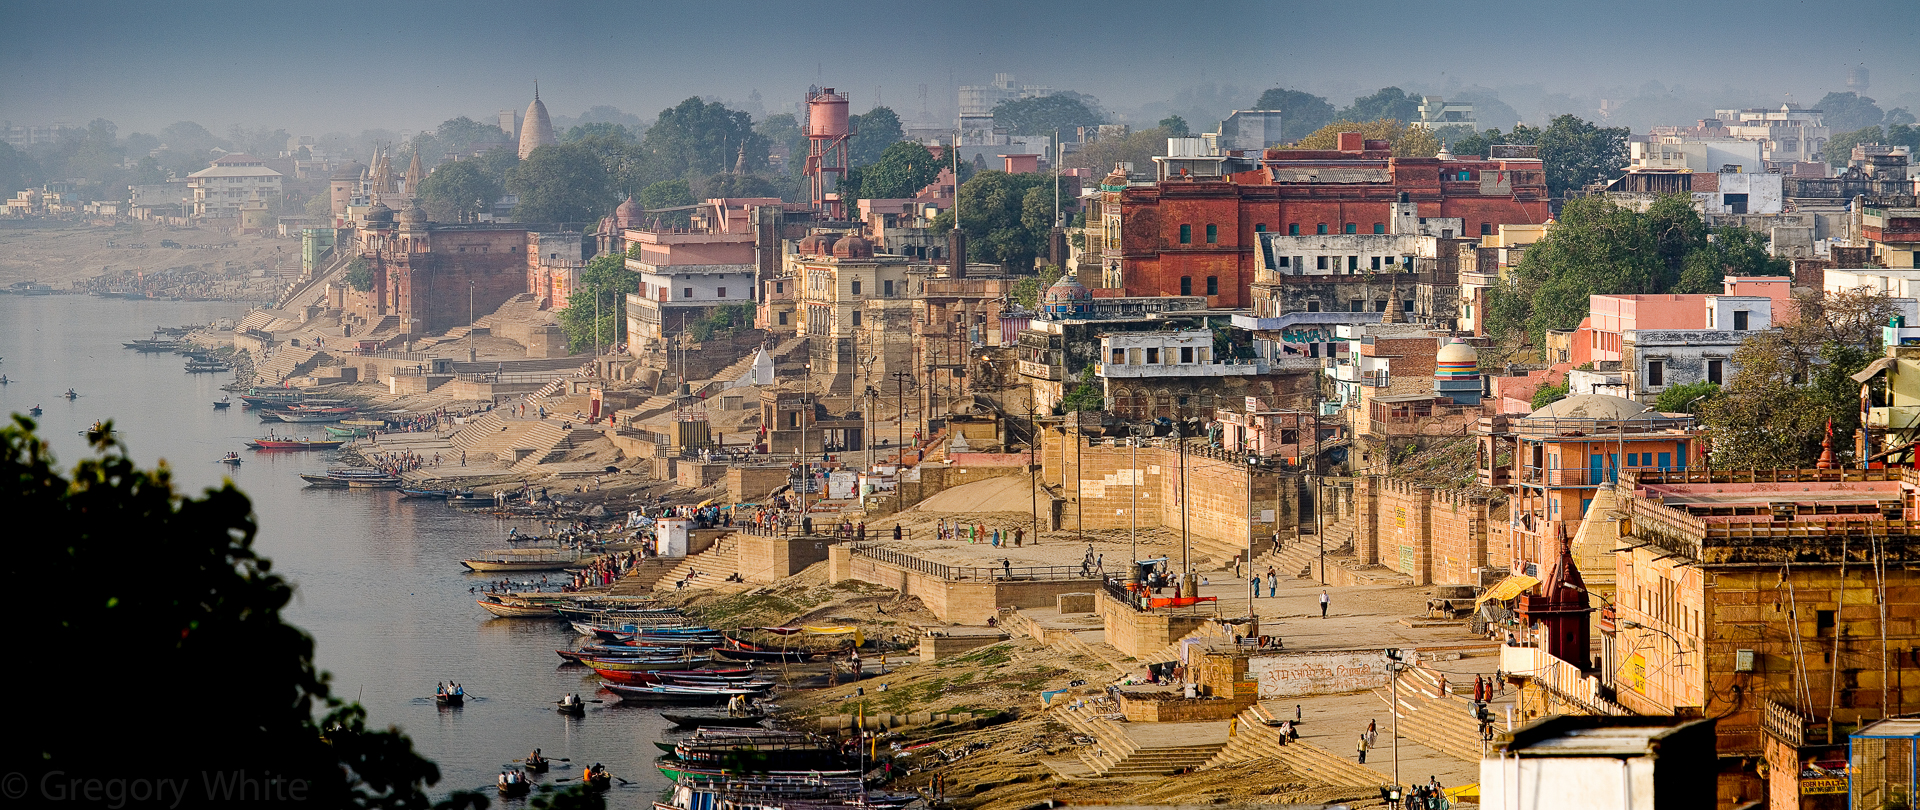 The holy city of Varanasi sits on the shores of the Ganges river in India.